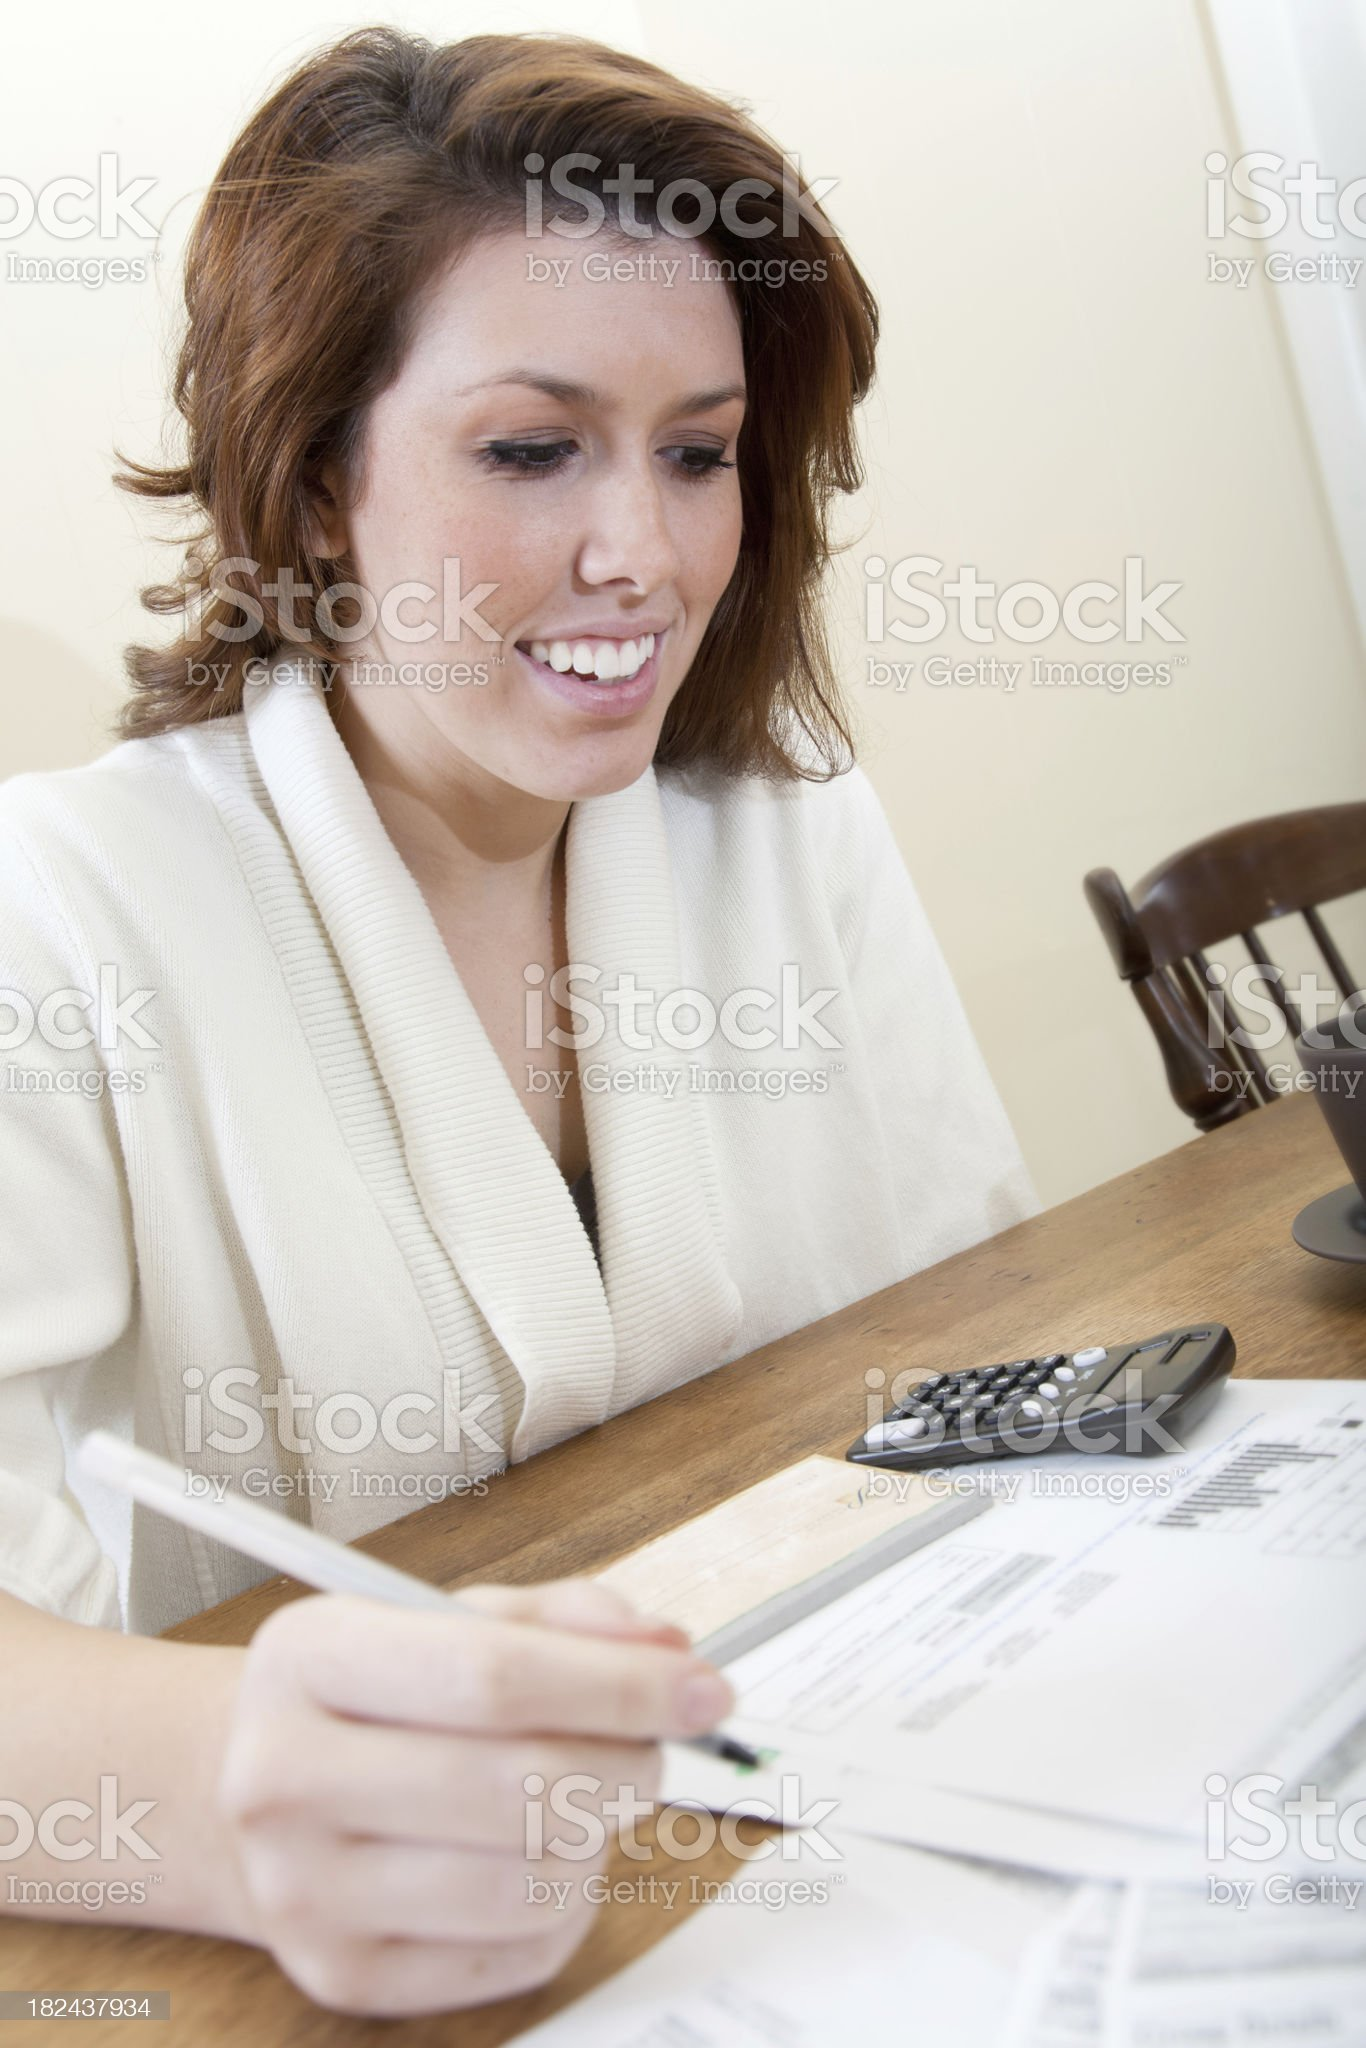 Woman Paying Bills with Check and Calculator royalty-free stock photo